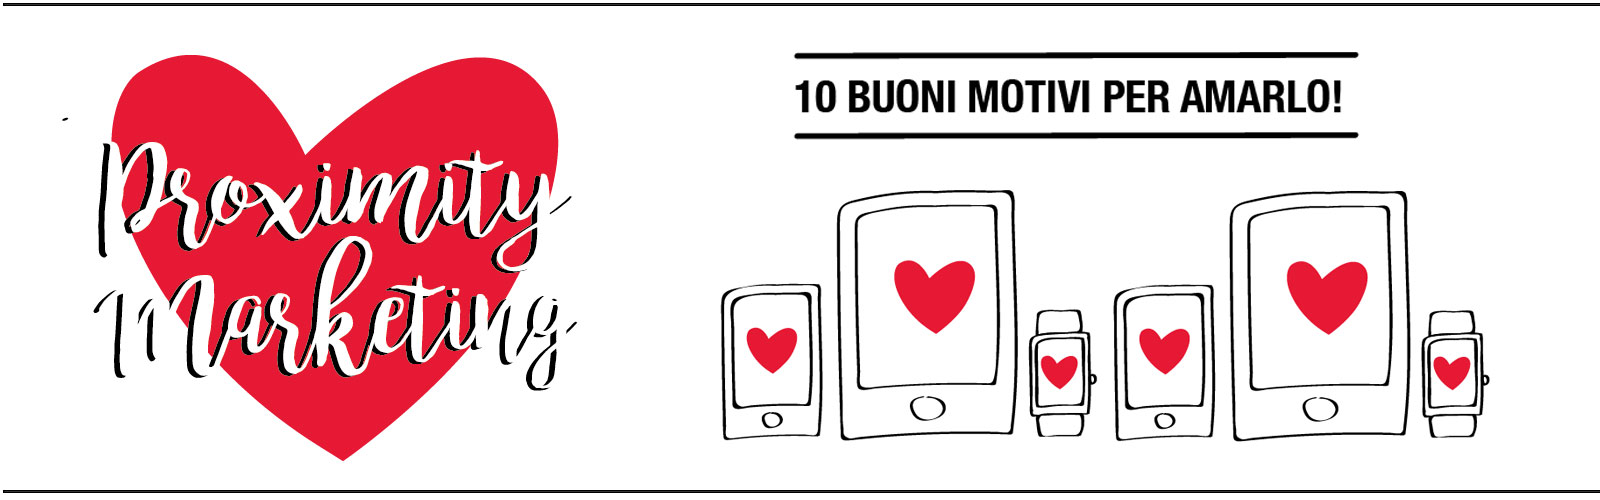 Proximity marketing: 10 buoni motivi per amarlo.